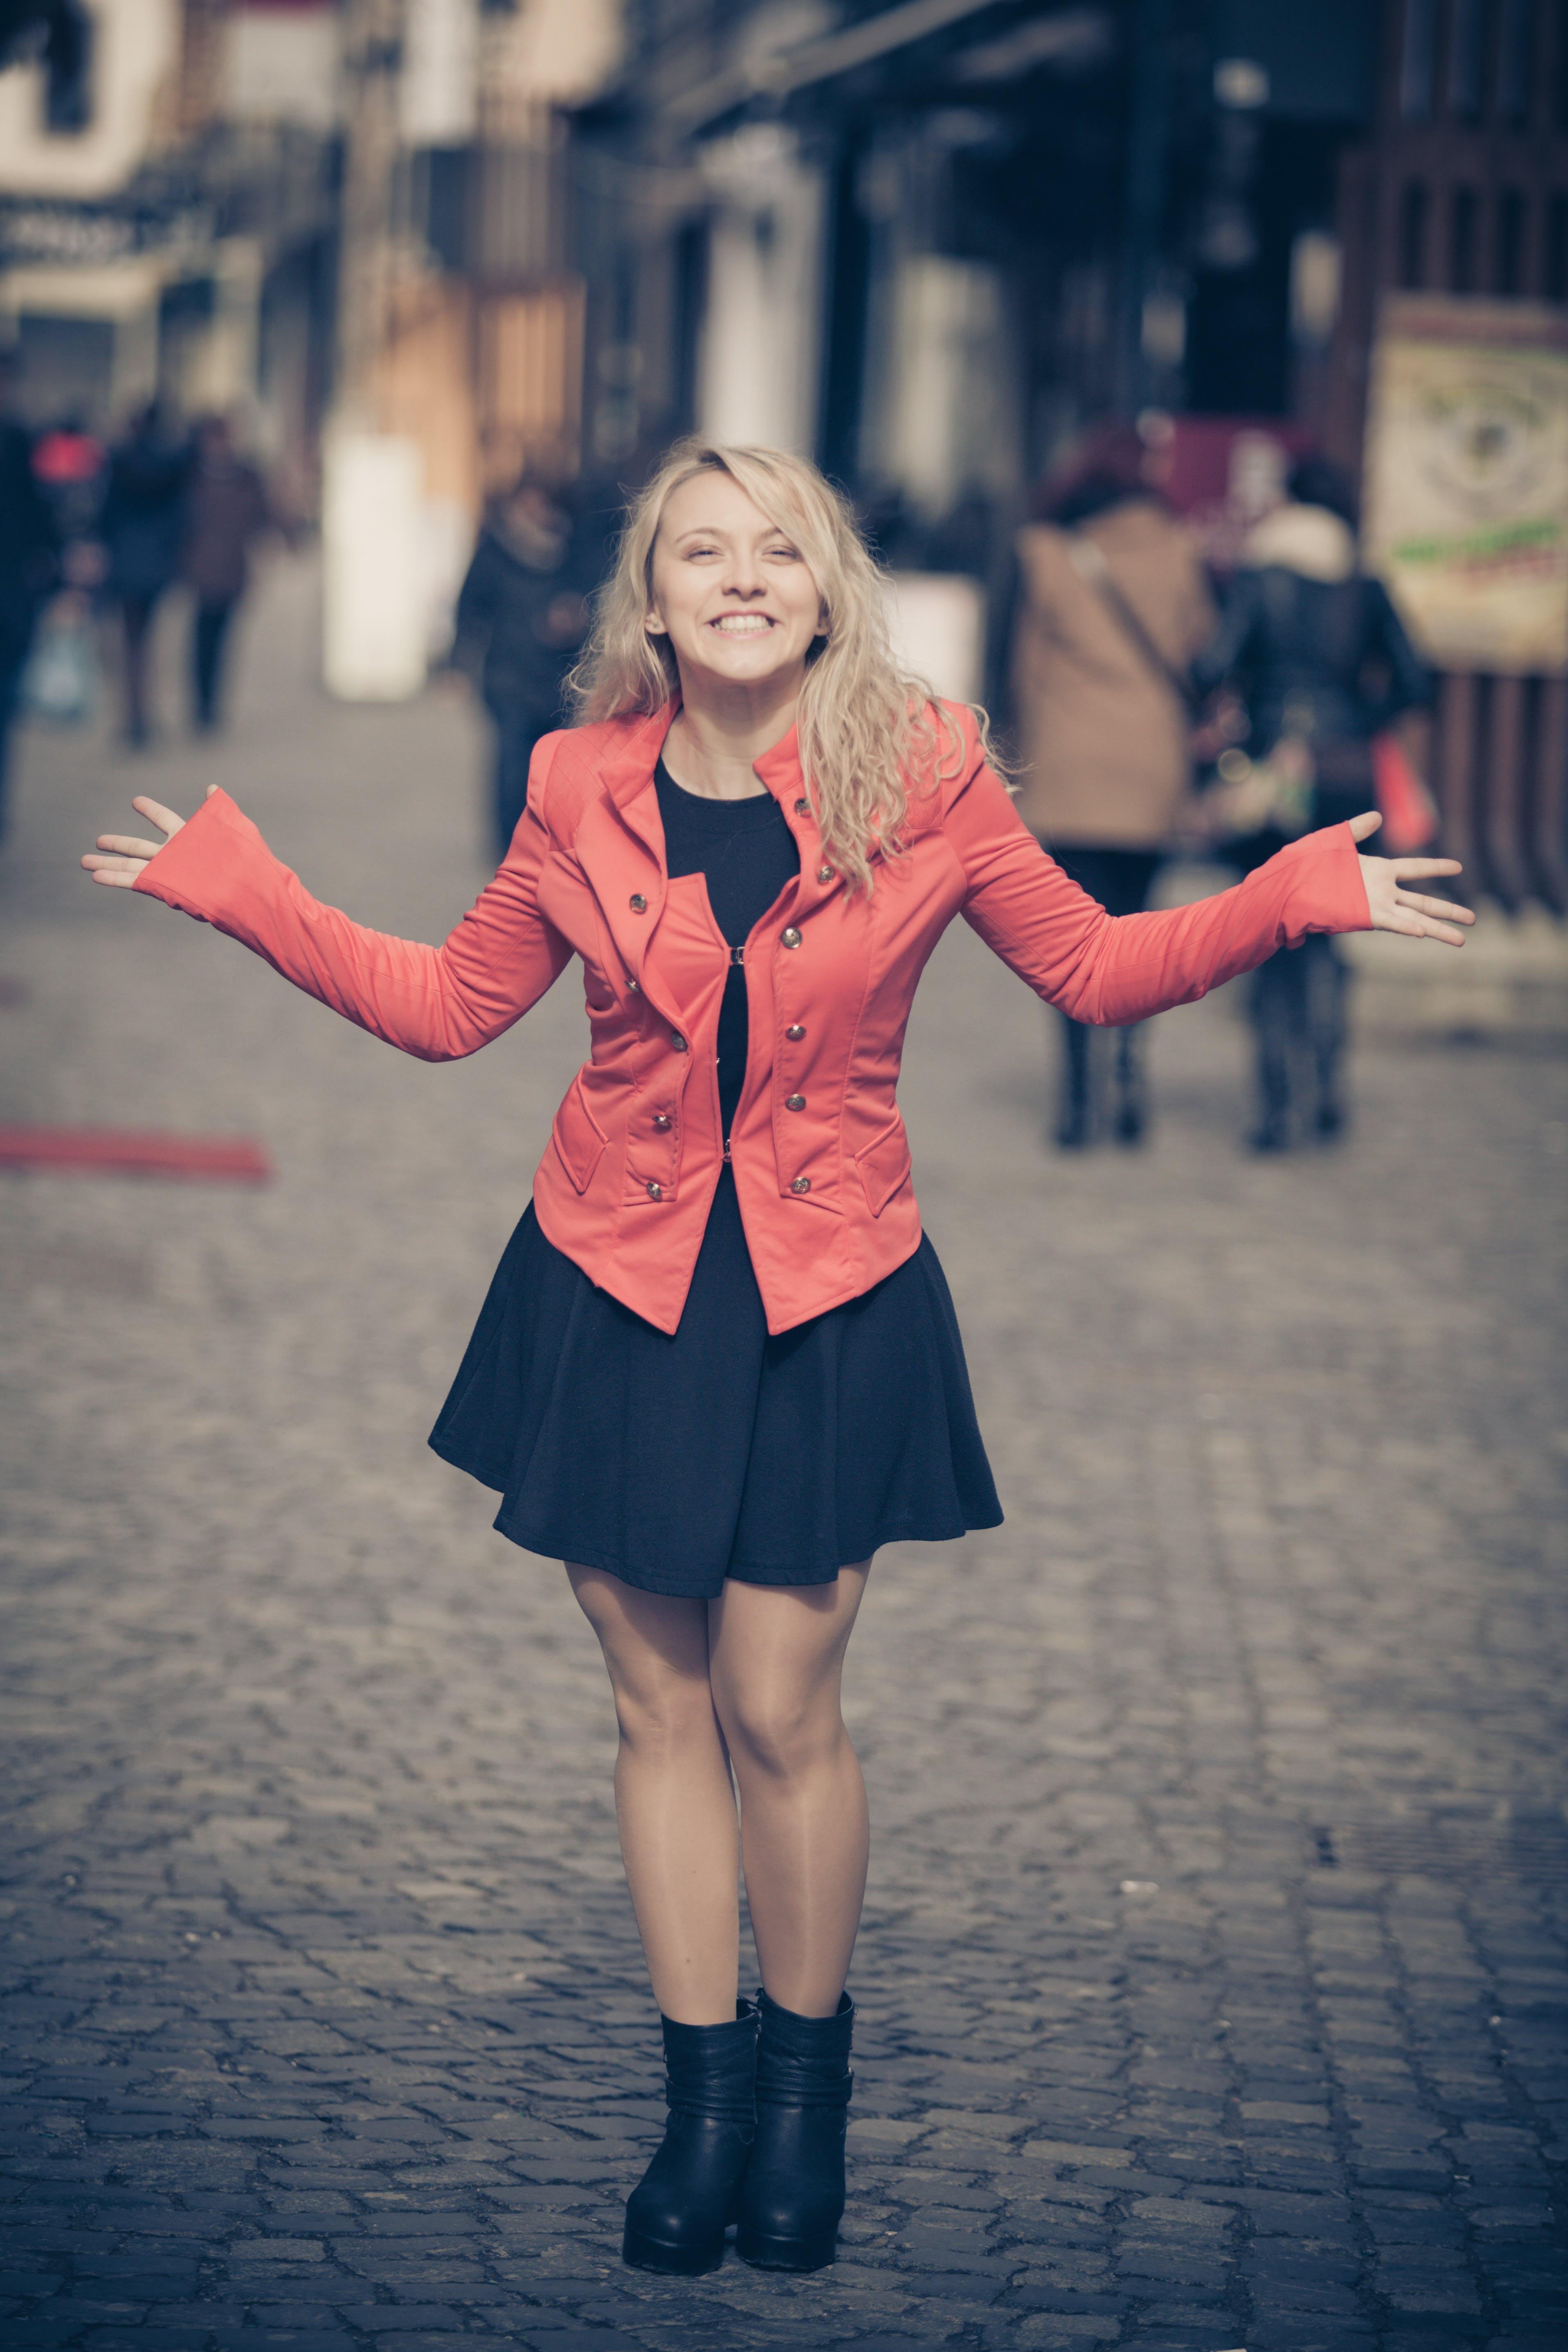 Woman in Red Jacket and Black Skirt